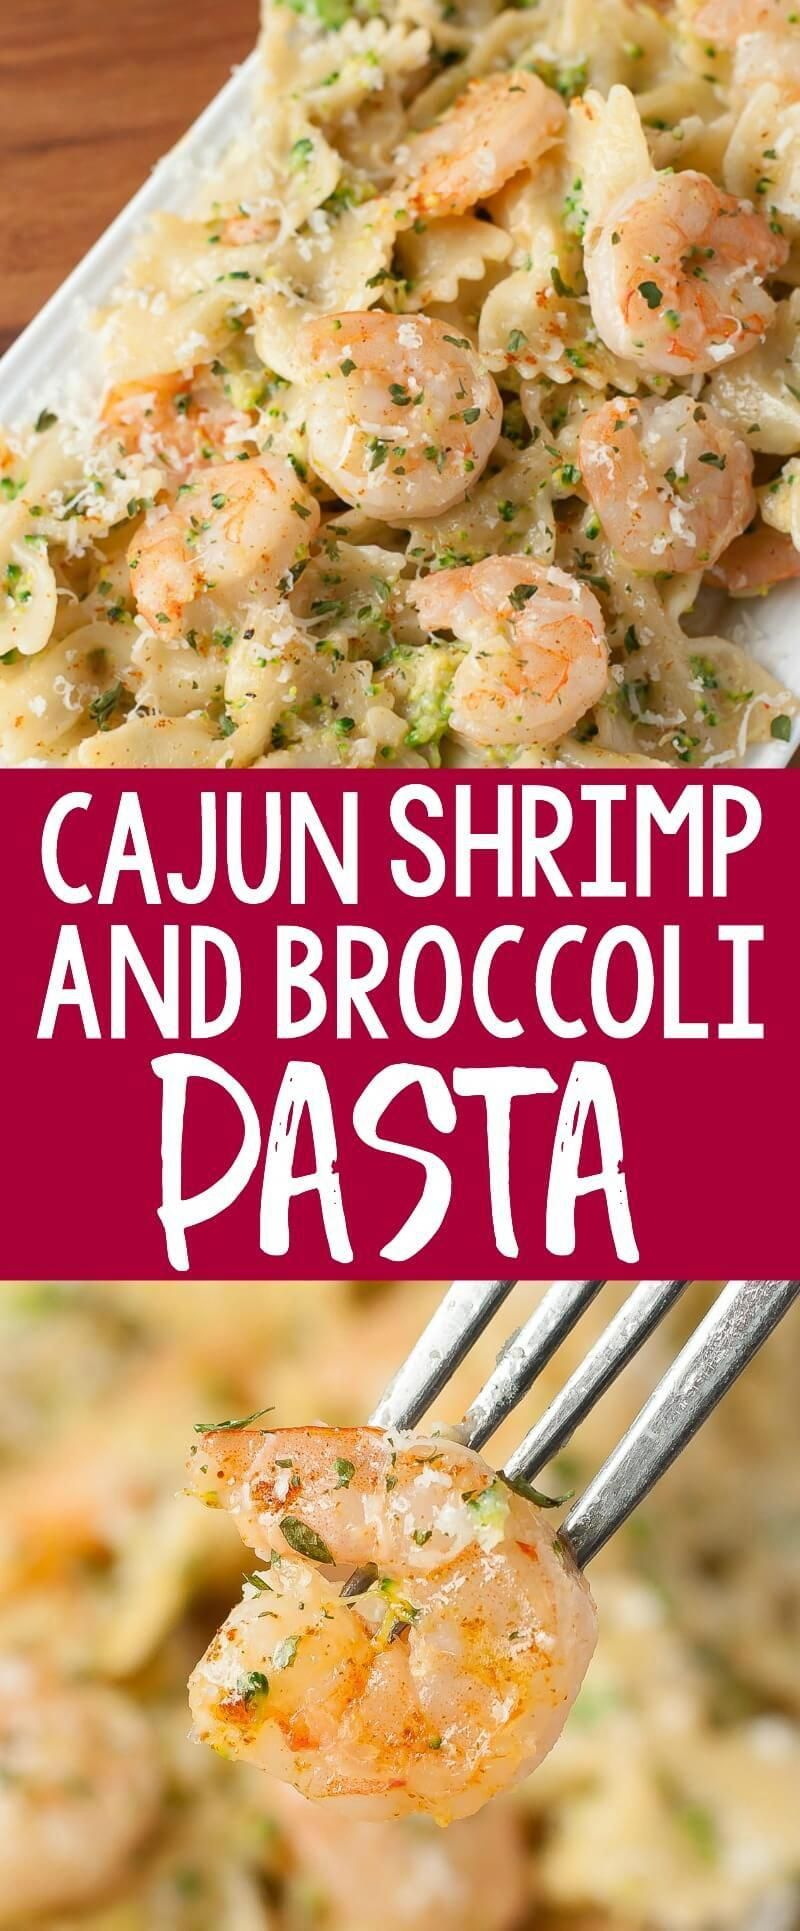 This delicious Creamy Cajun Shrimp and Broccoli Pasta makes an easy lunch or dinner! The cajun zing adds a nice burst of flavor to this tasty plate of pasta. #pasta #shrimp #seafood #broccoli #cajun #pastanight #comfortfood #easyrecipes #TacoBellPotato